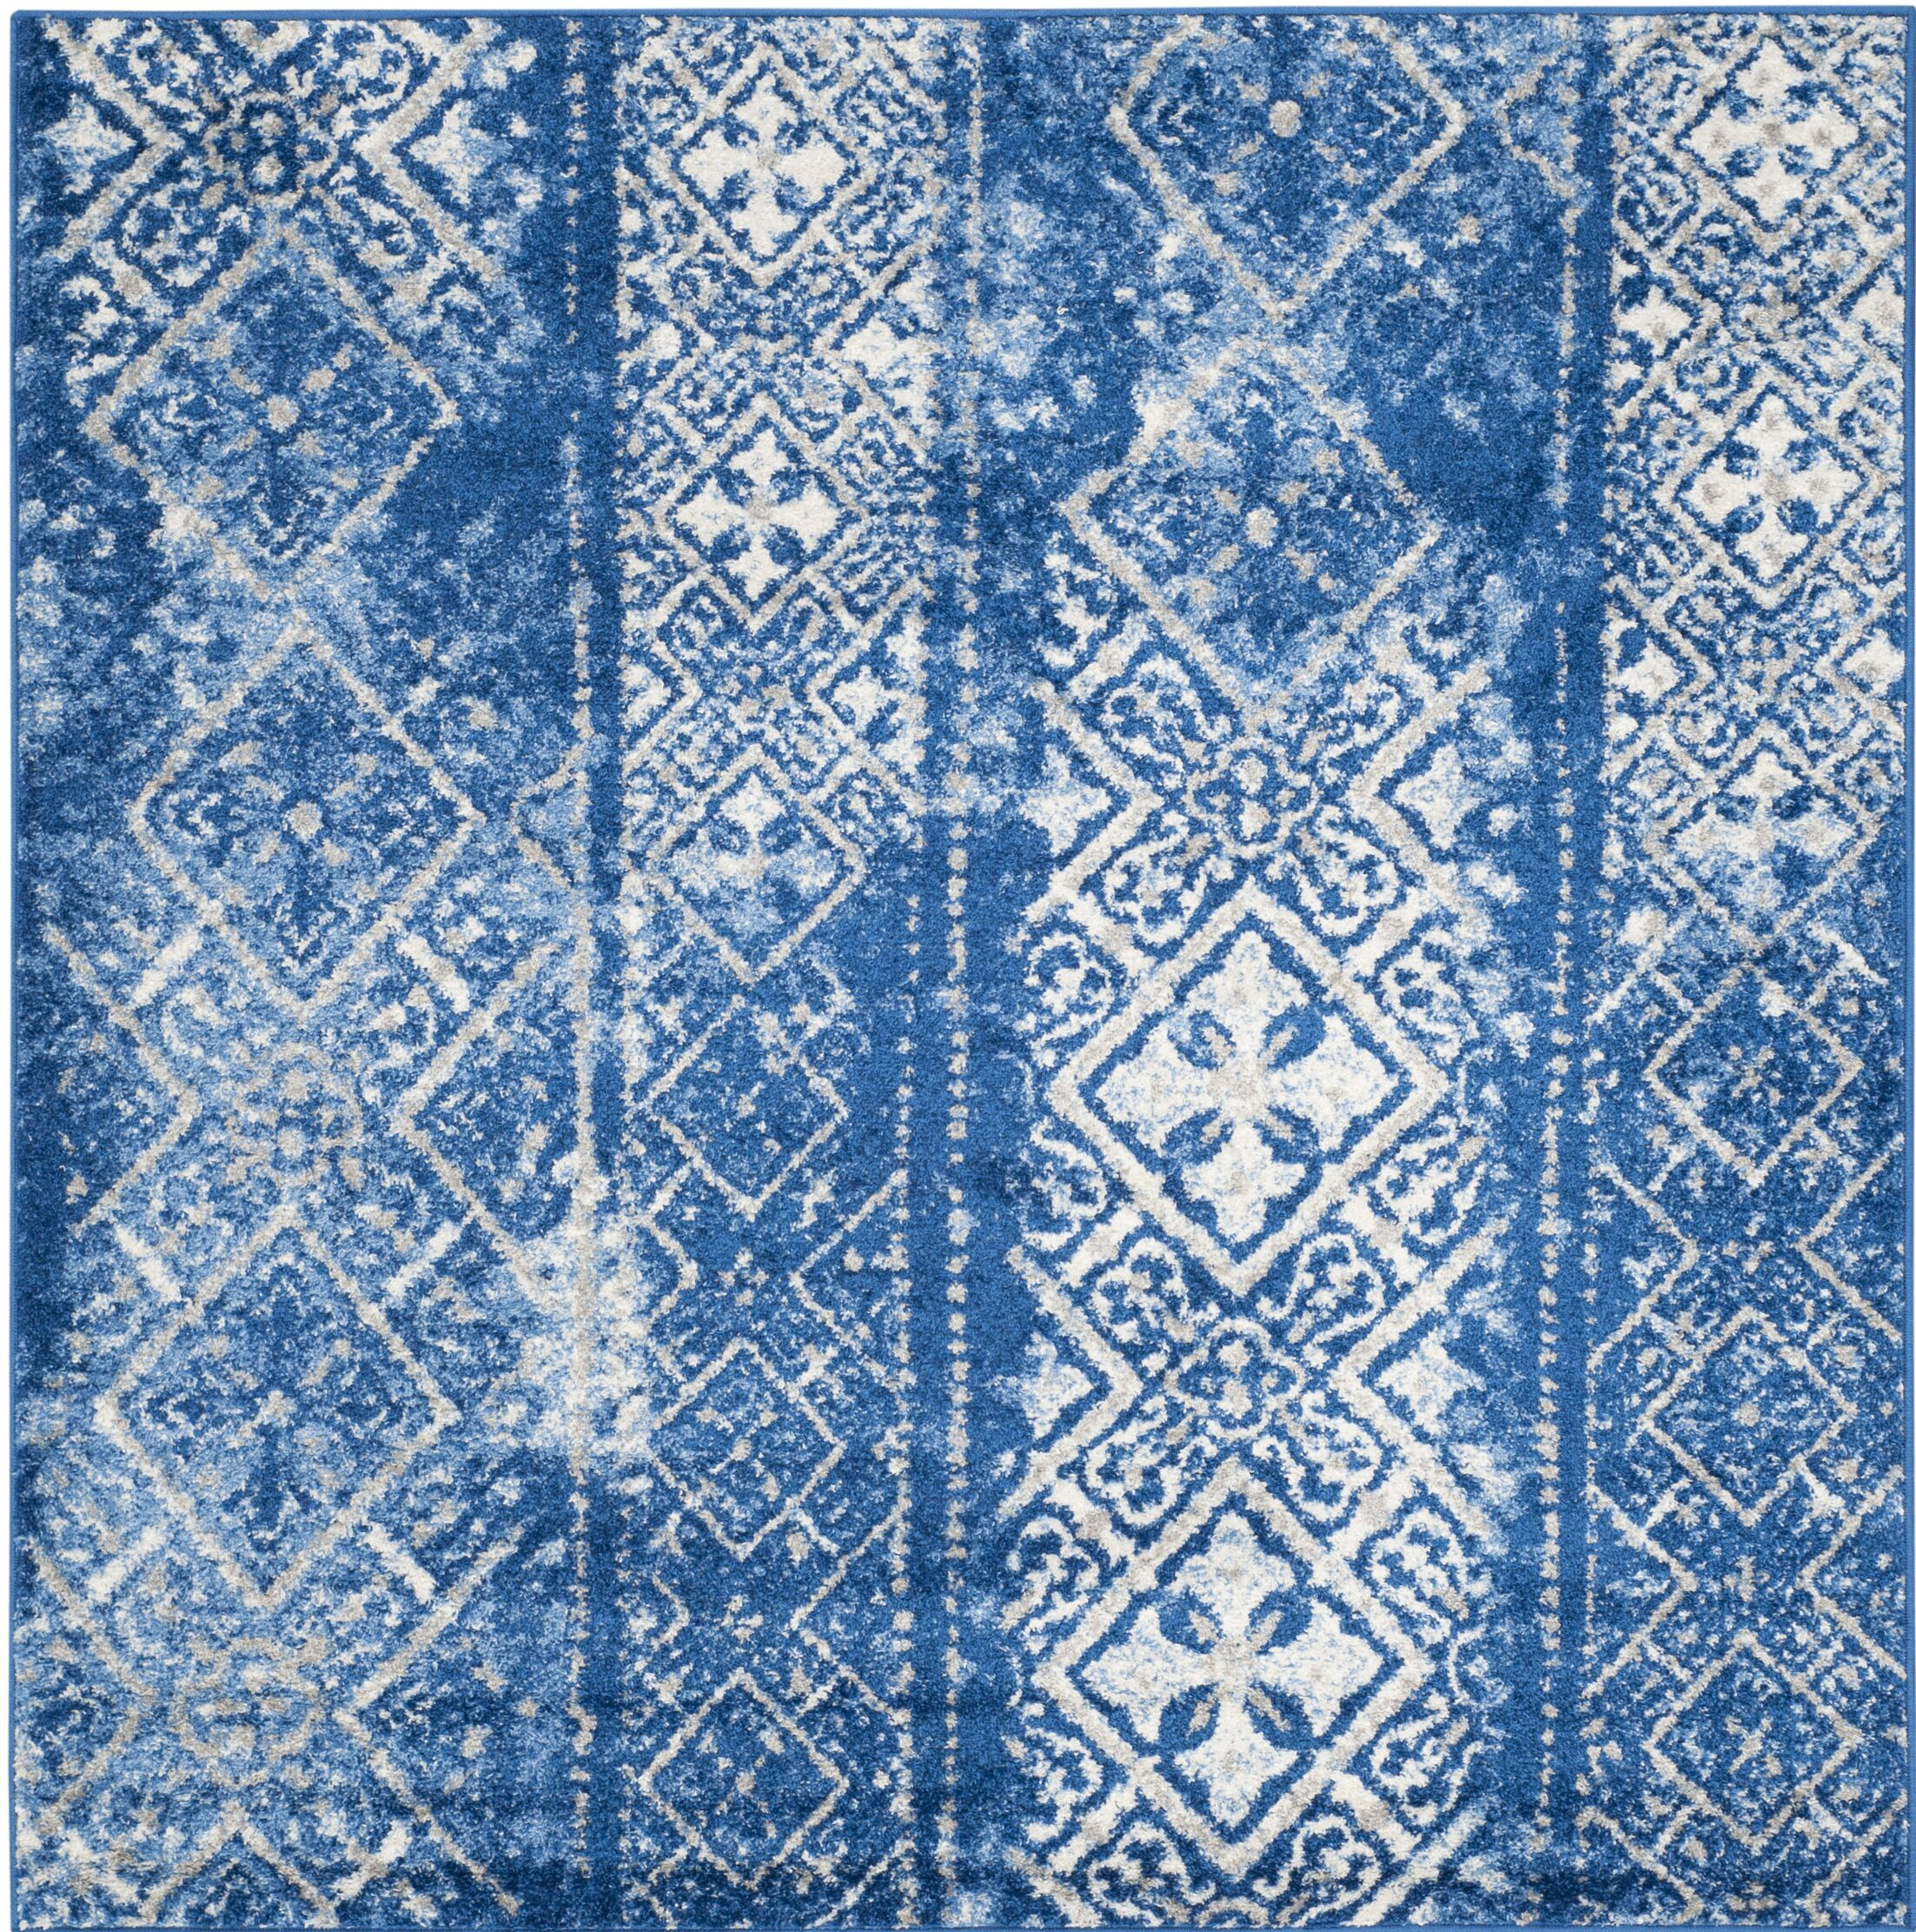 North Brookfield Beige/Blue Area Rug Rug Size: Rectangle 6' x 9'